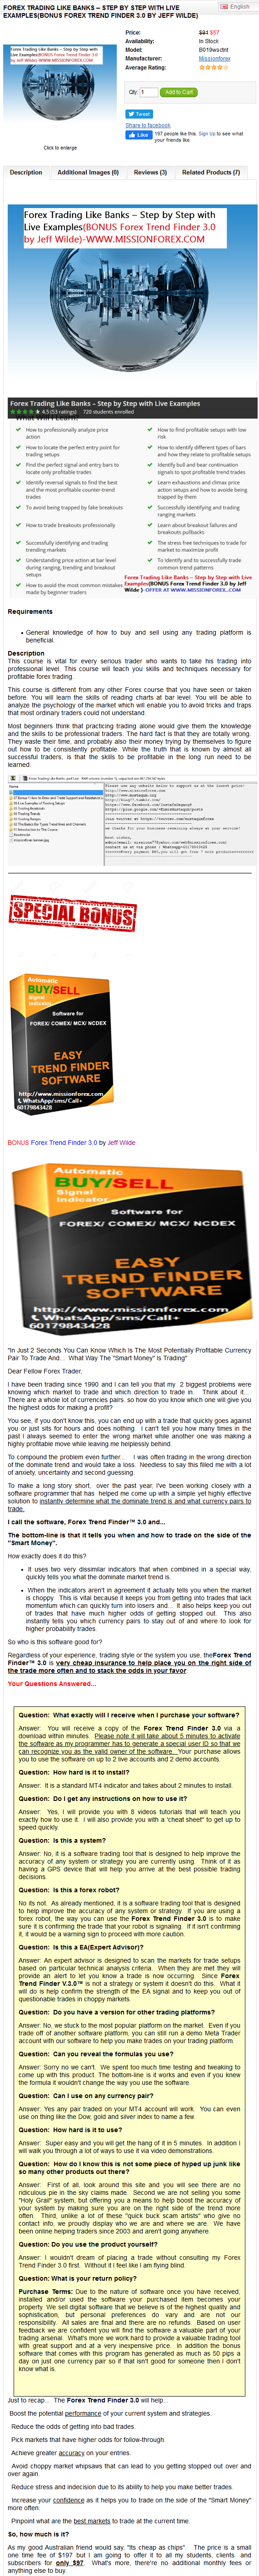 Hari Swaminathan - IncomeMAX Spreads & Strangles Class - Options Trading Systems (Enjoy Free BONUS Forex Trading Like Banks – Step by Step with Live Examples)